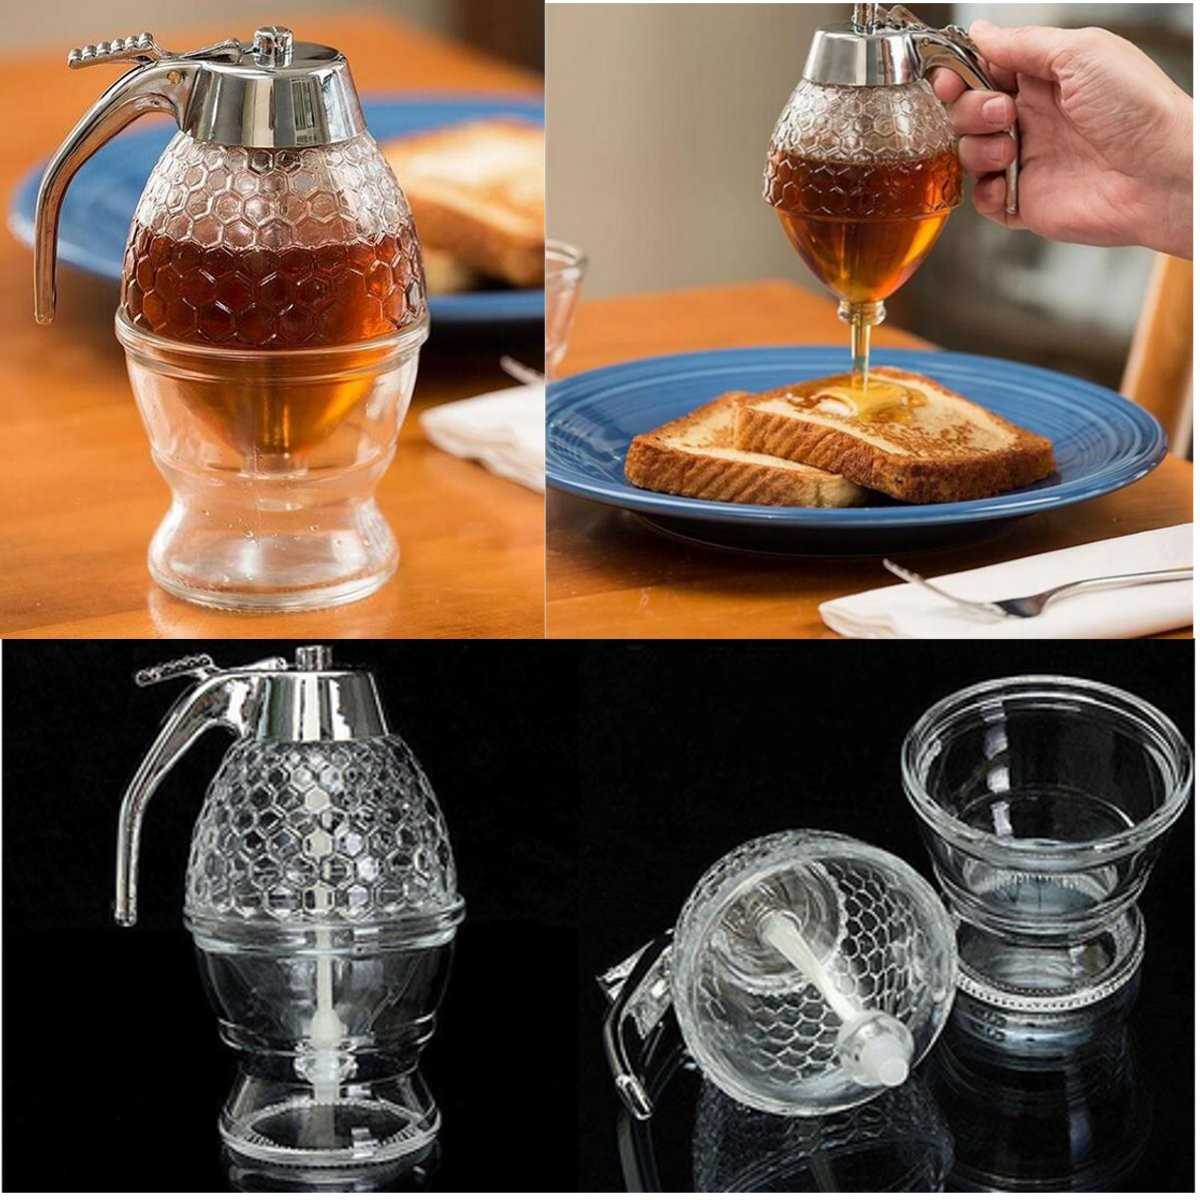 Honey Syrup Jar Dispenser Holds 1 Cup Acrylic Container Kitchen Storage w/ Stand